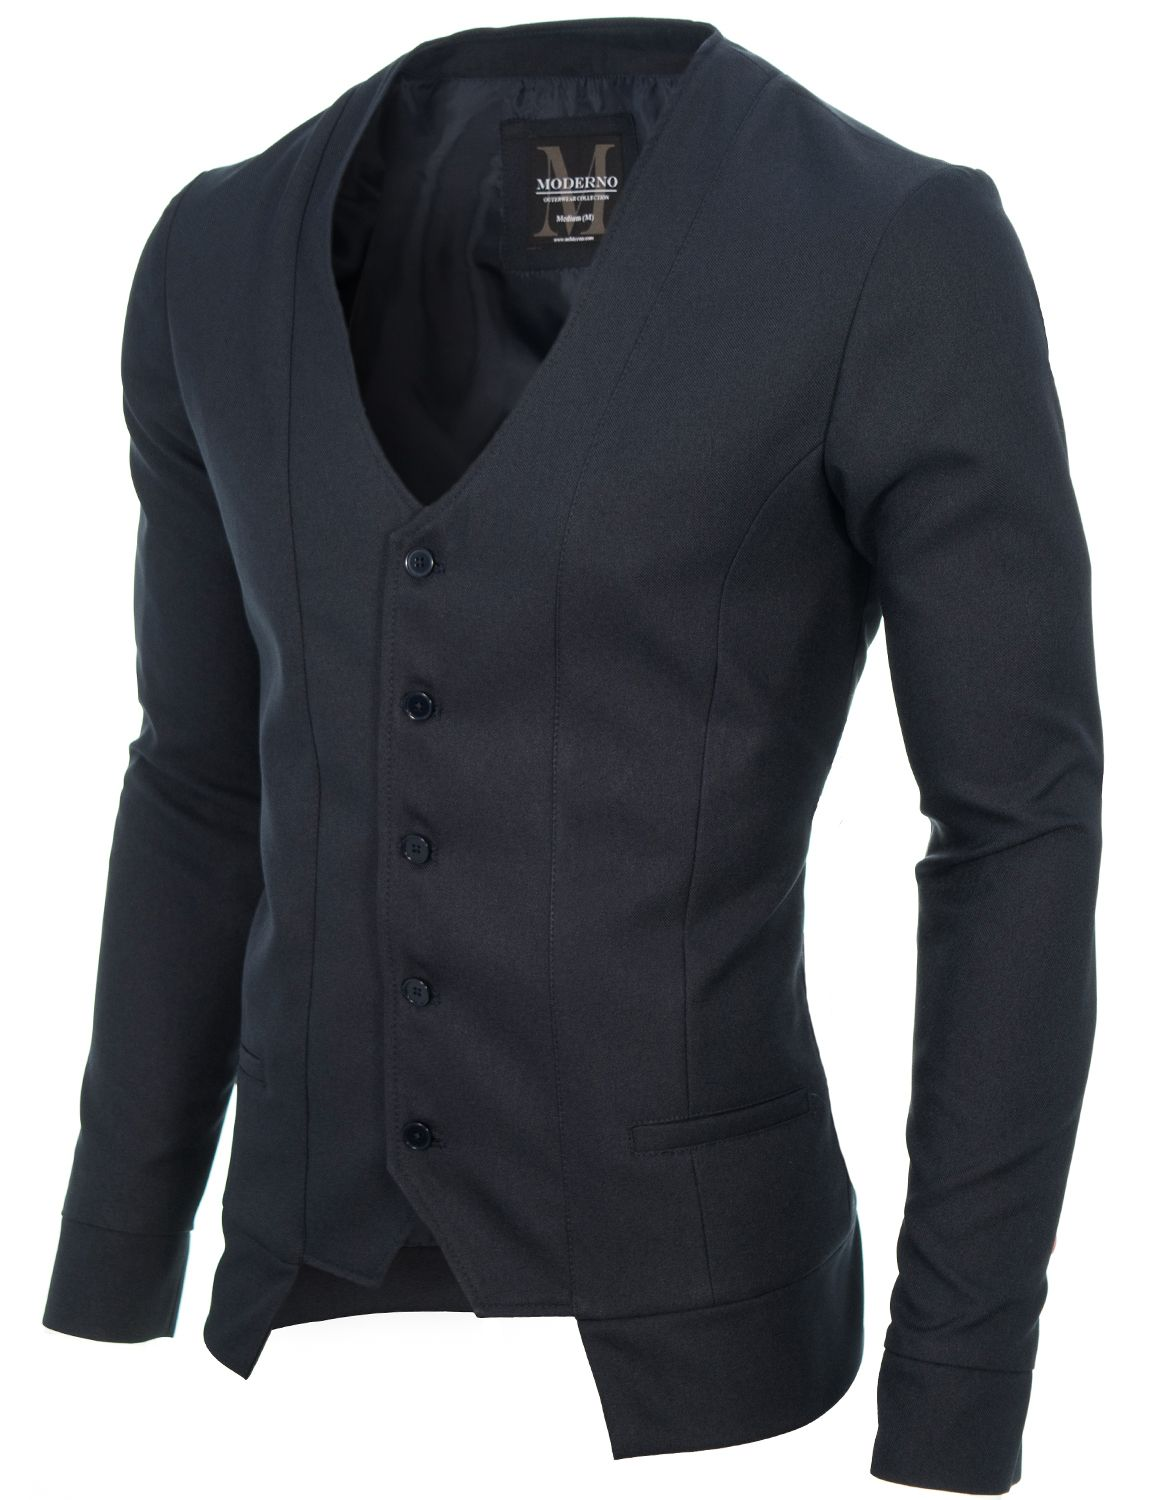 Mens slim fit long sleeve vest cardigan charcoal (MOD16130V) in 2019 ... 4a006bead10